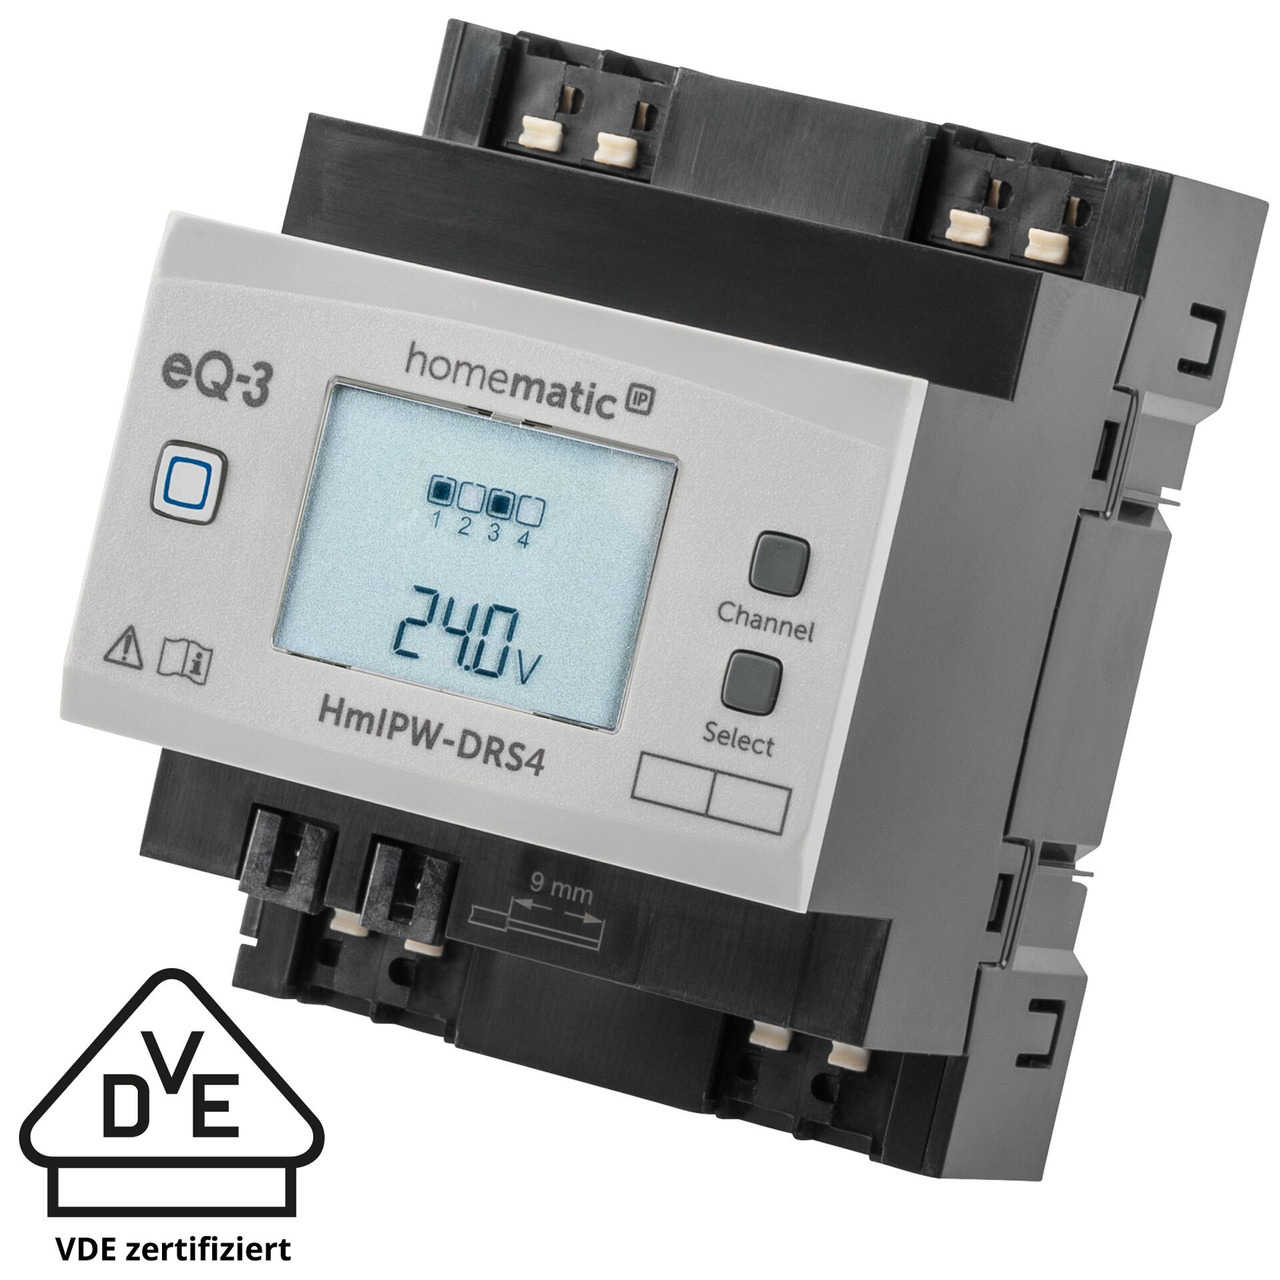 Homematic IP Wired 4-fach-Schaltaktor HmIPW-DRS4- VDE zertifiziert